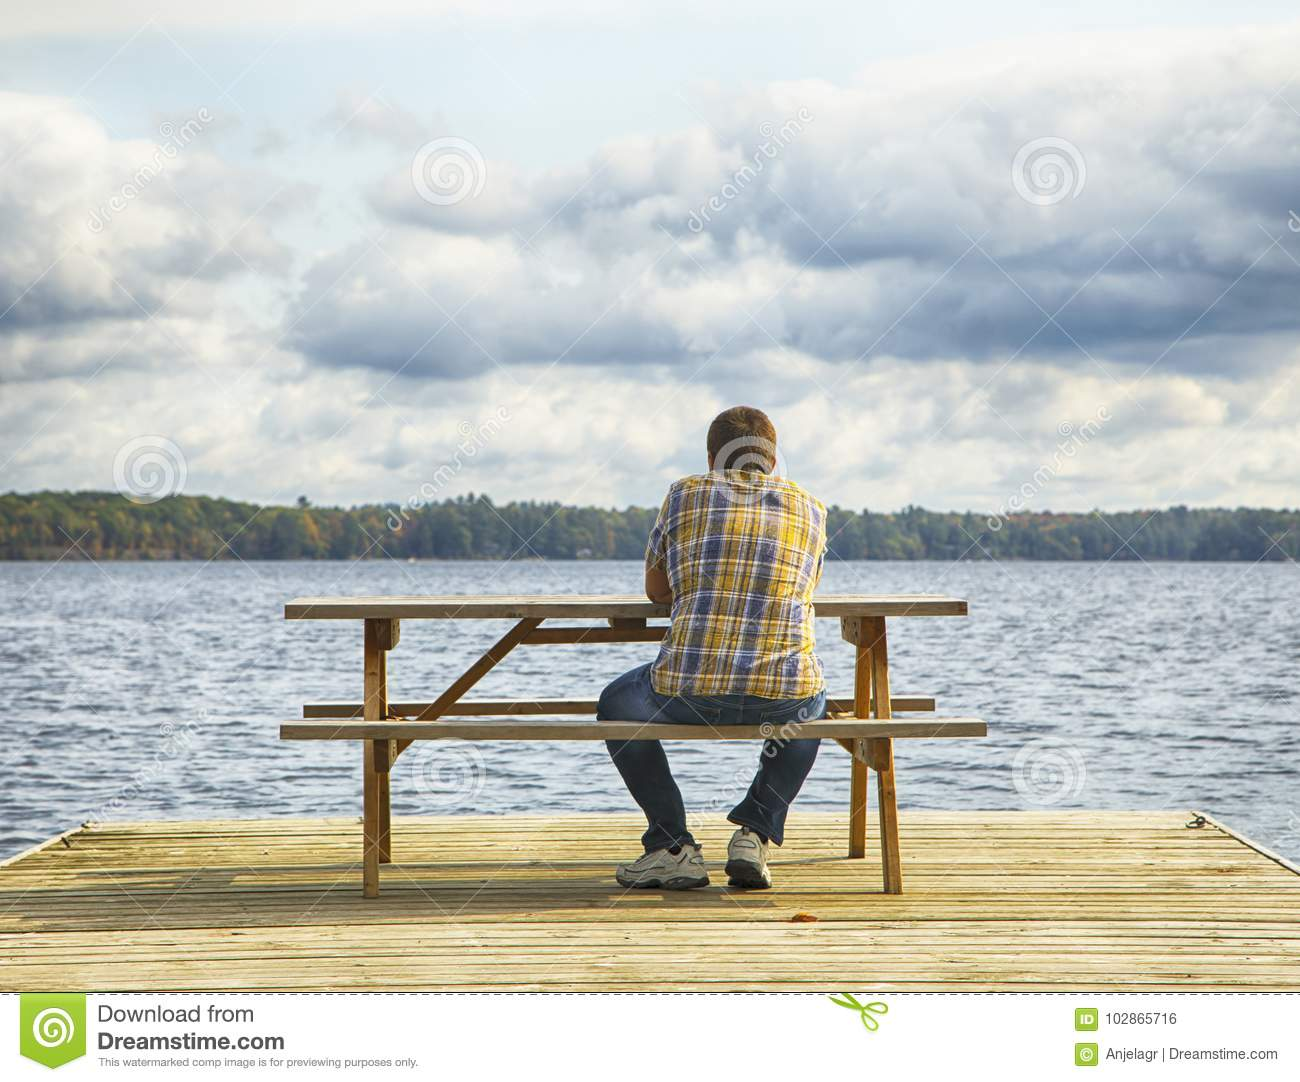 Man sitting on a bench in front of a lake